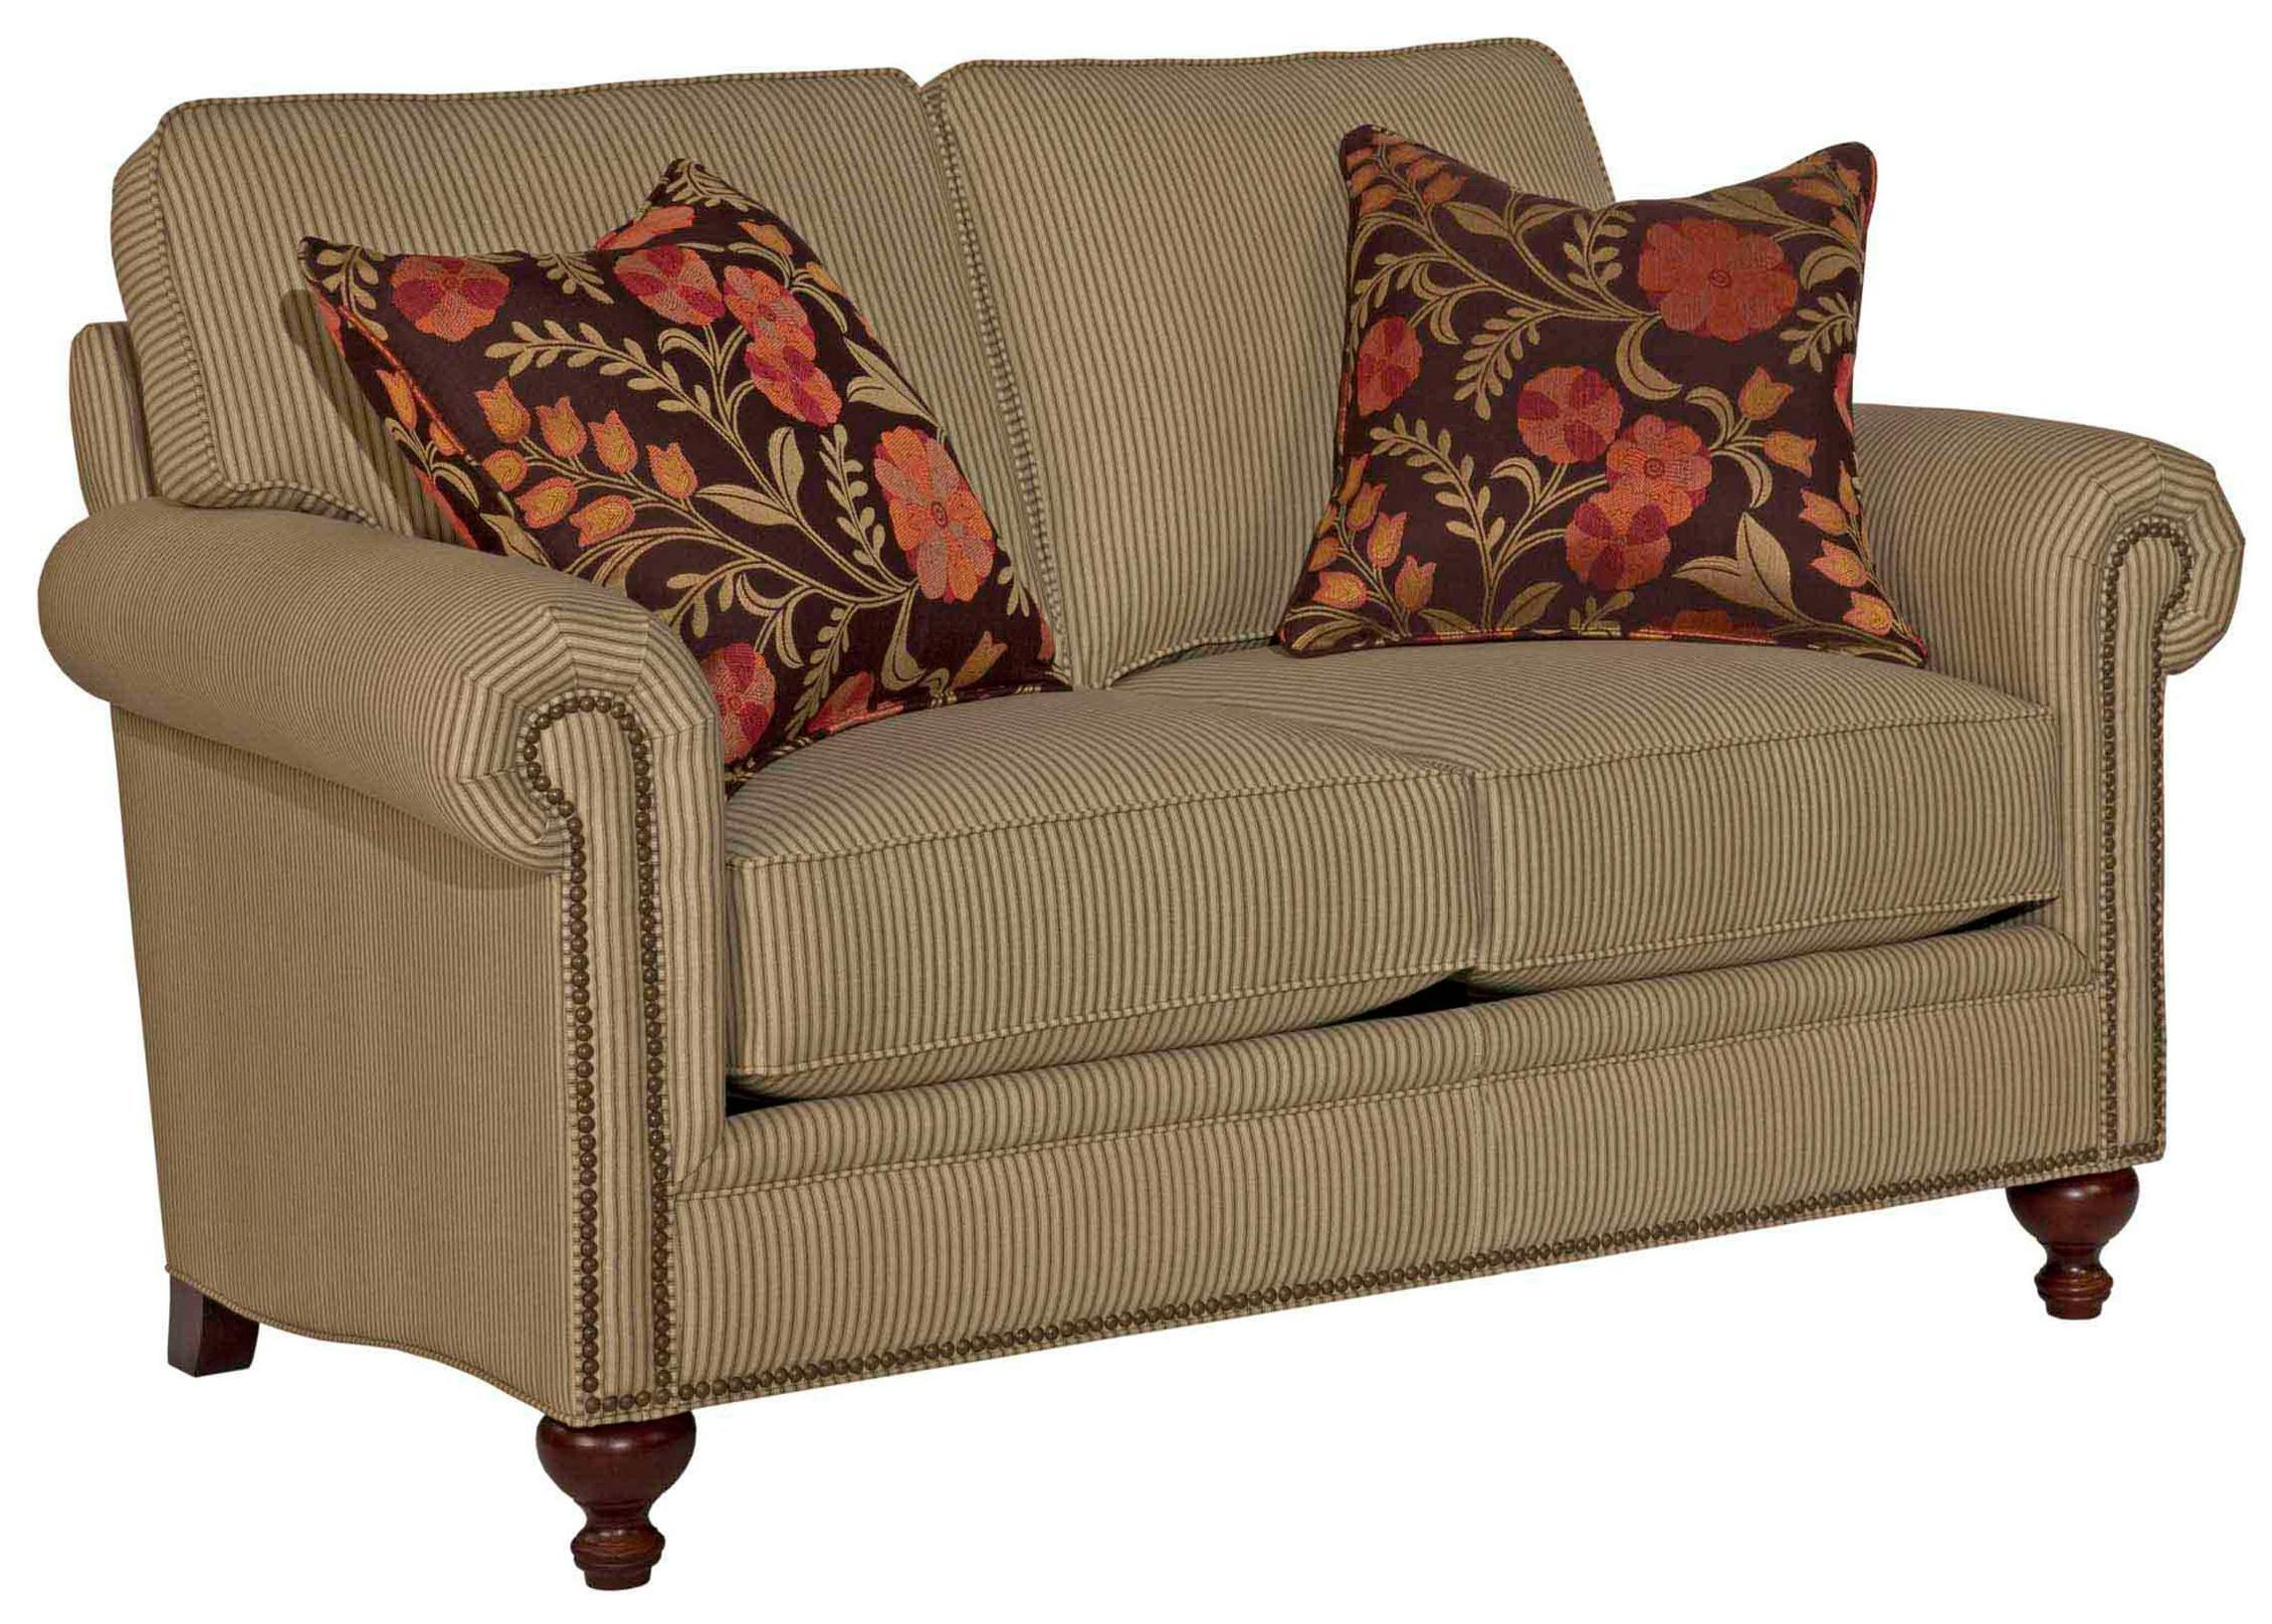 Broyhill Furniture Harrison Traditional Loveseat with Nail